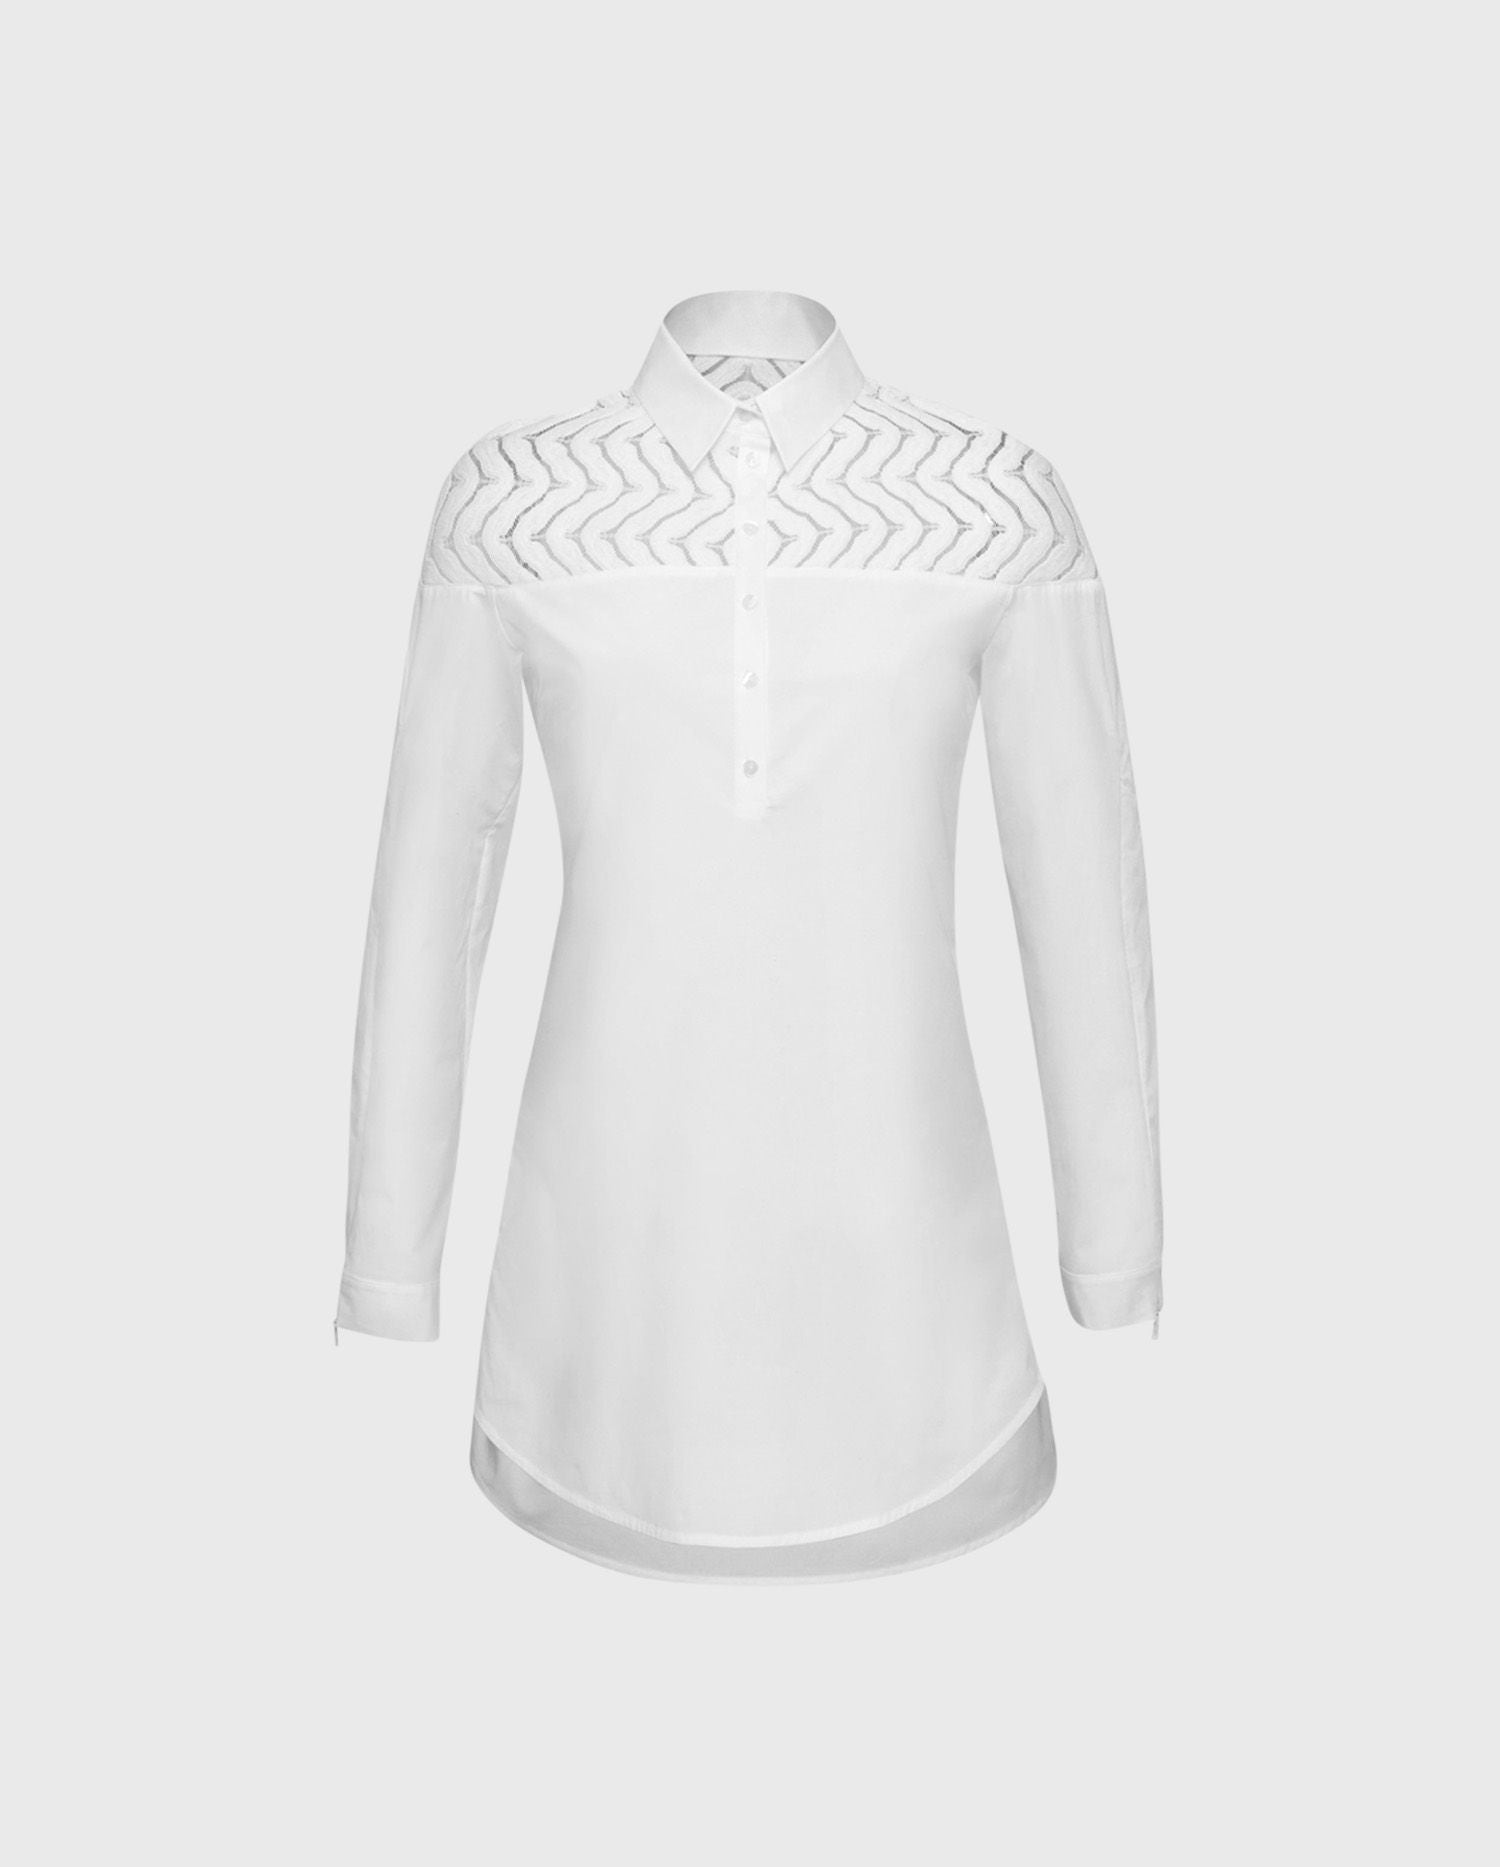 Add the crisp white Barbara shirt for a chic and easy silhouette to enhance your style